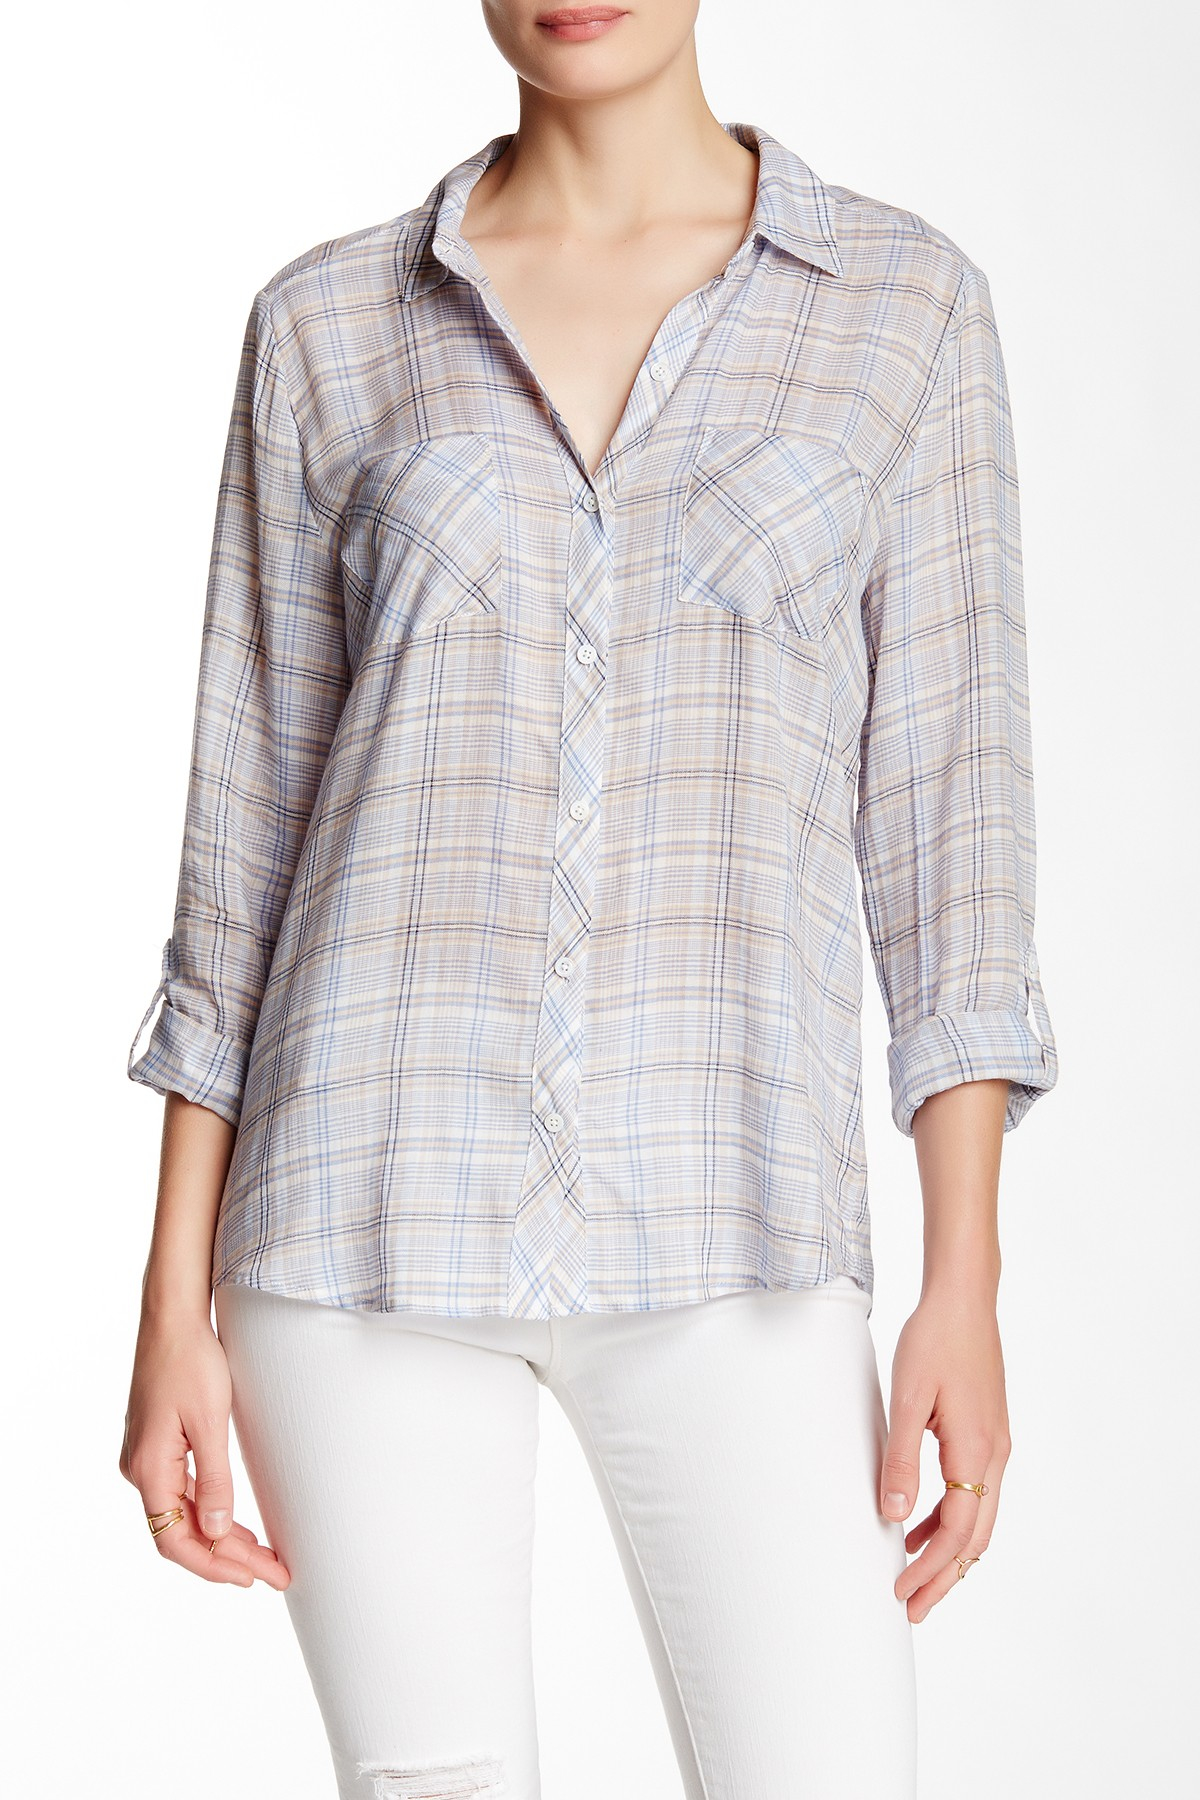 Lyst soft joie sequoia plaid shirt for Soft joie plaid shirt